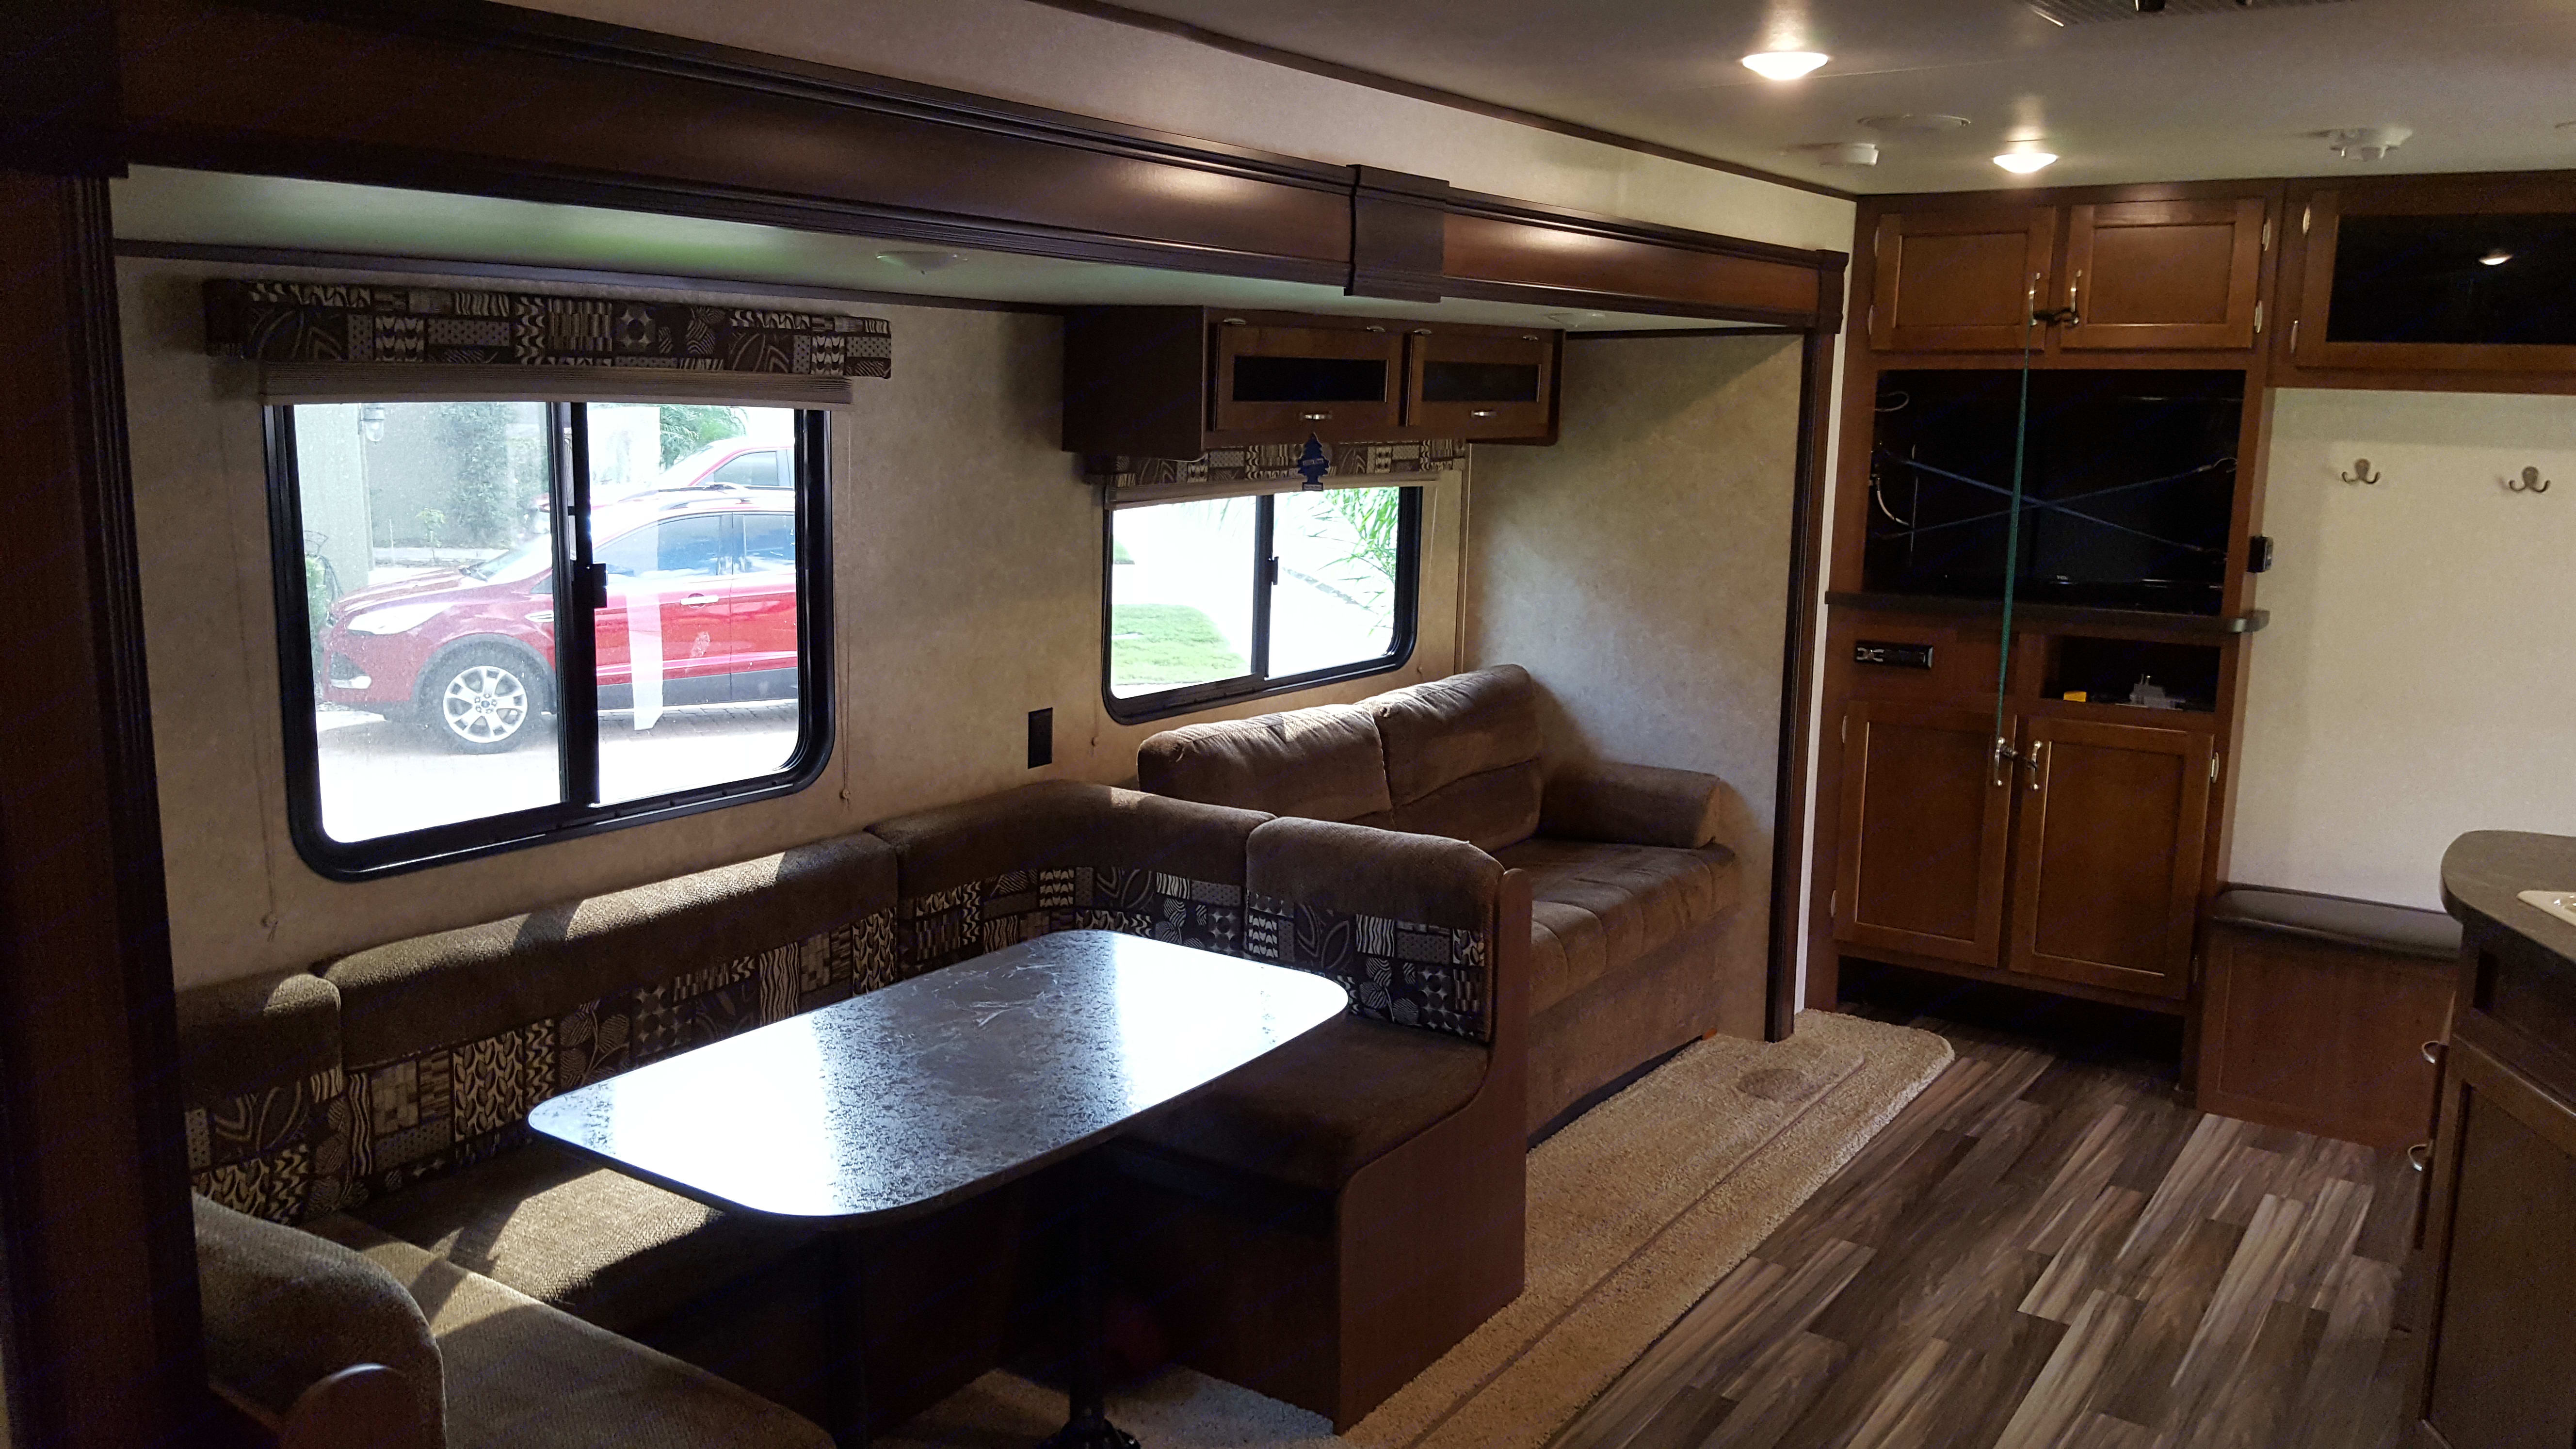 Kitchenette & Sofa bed. Jayco Jay Flight SLX 287 BHSW 2017